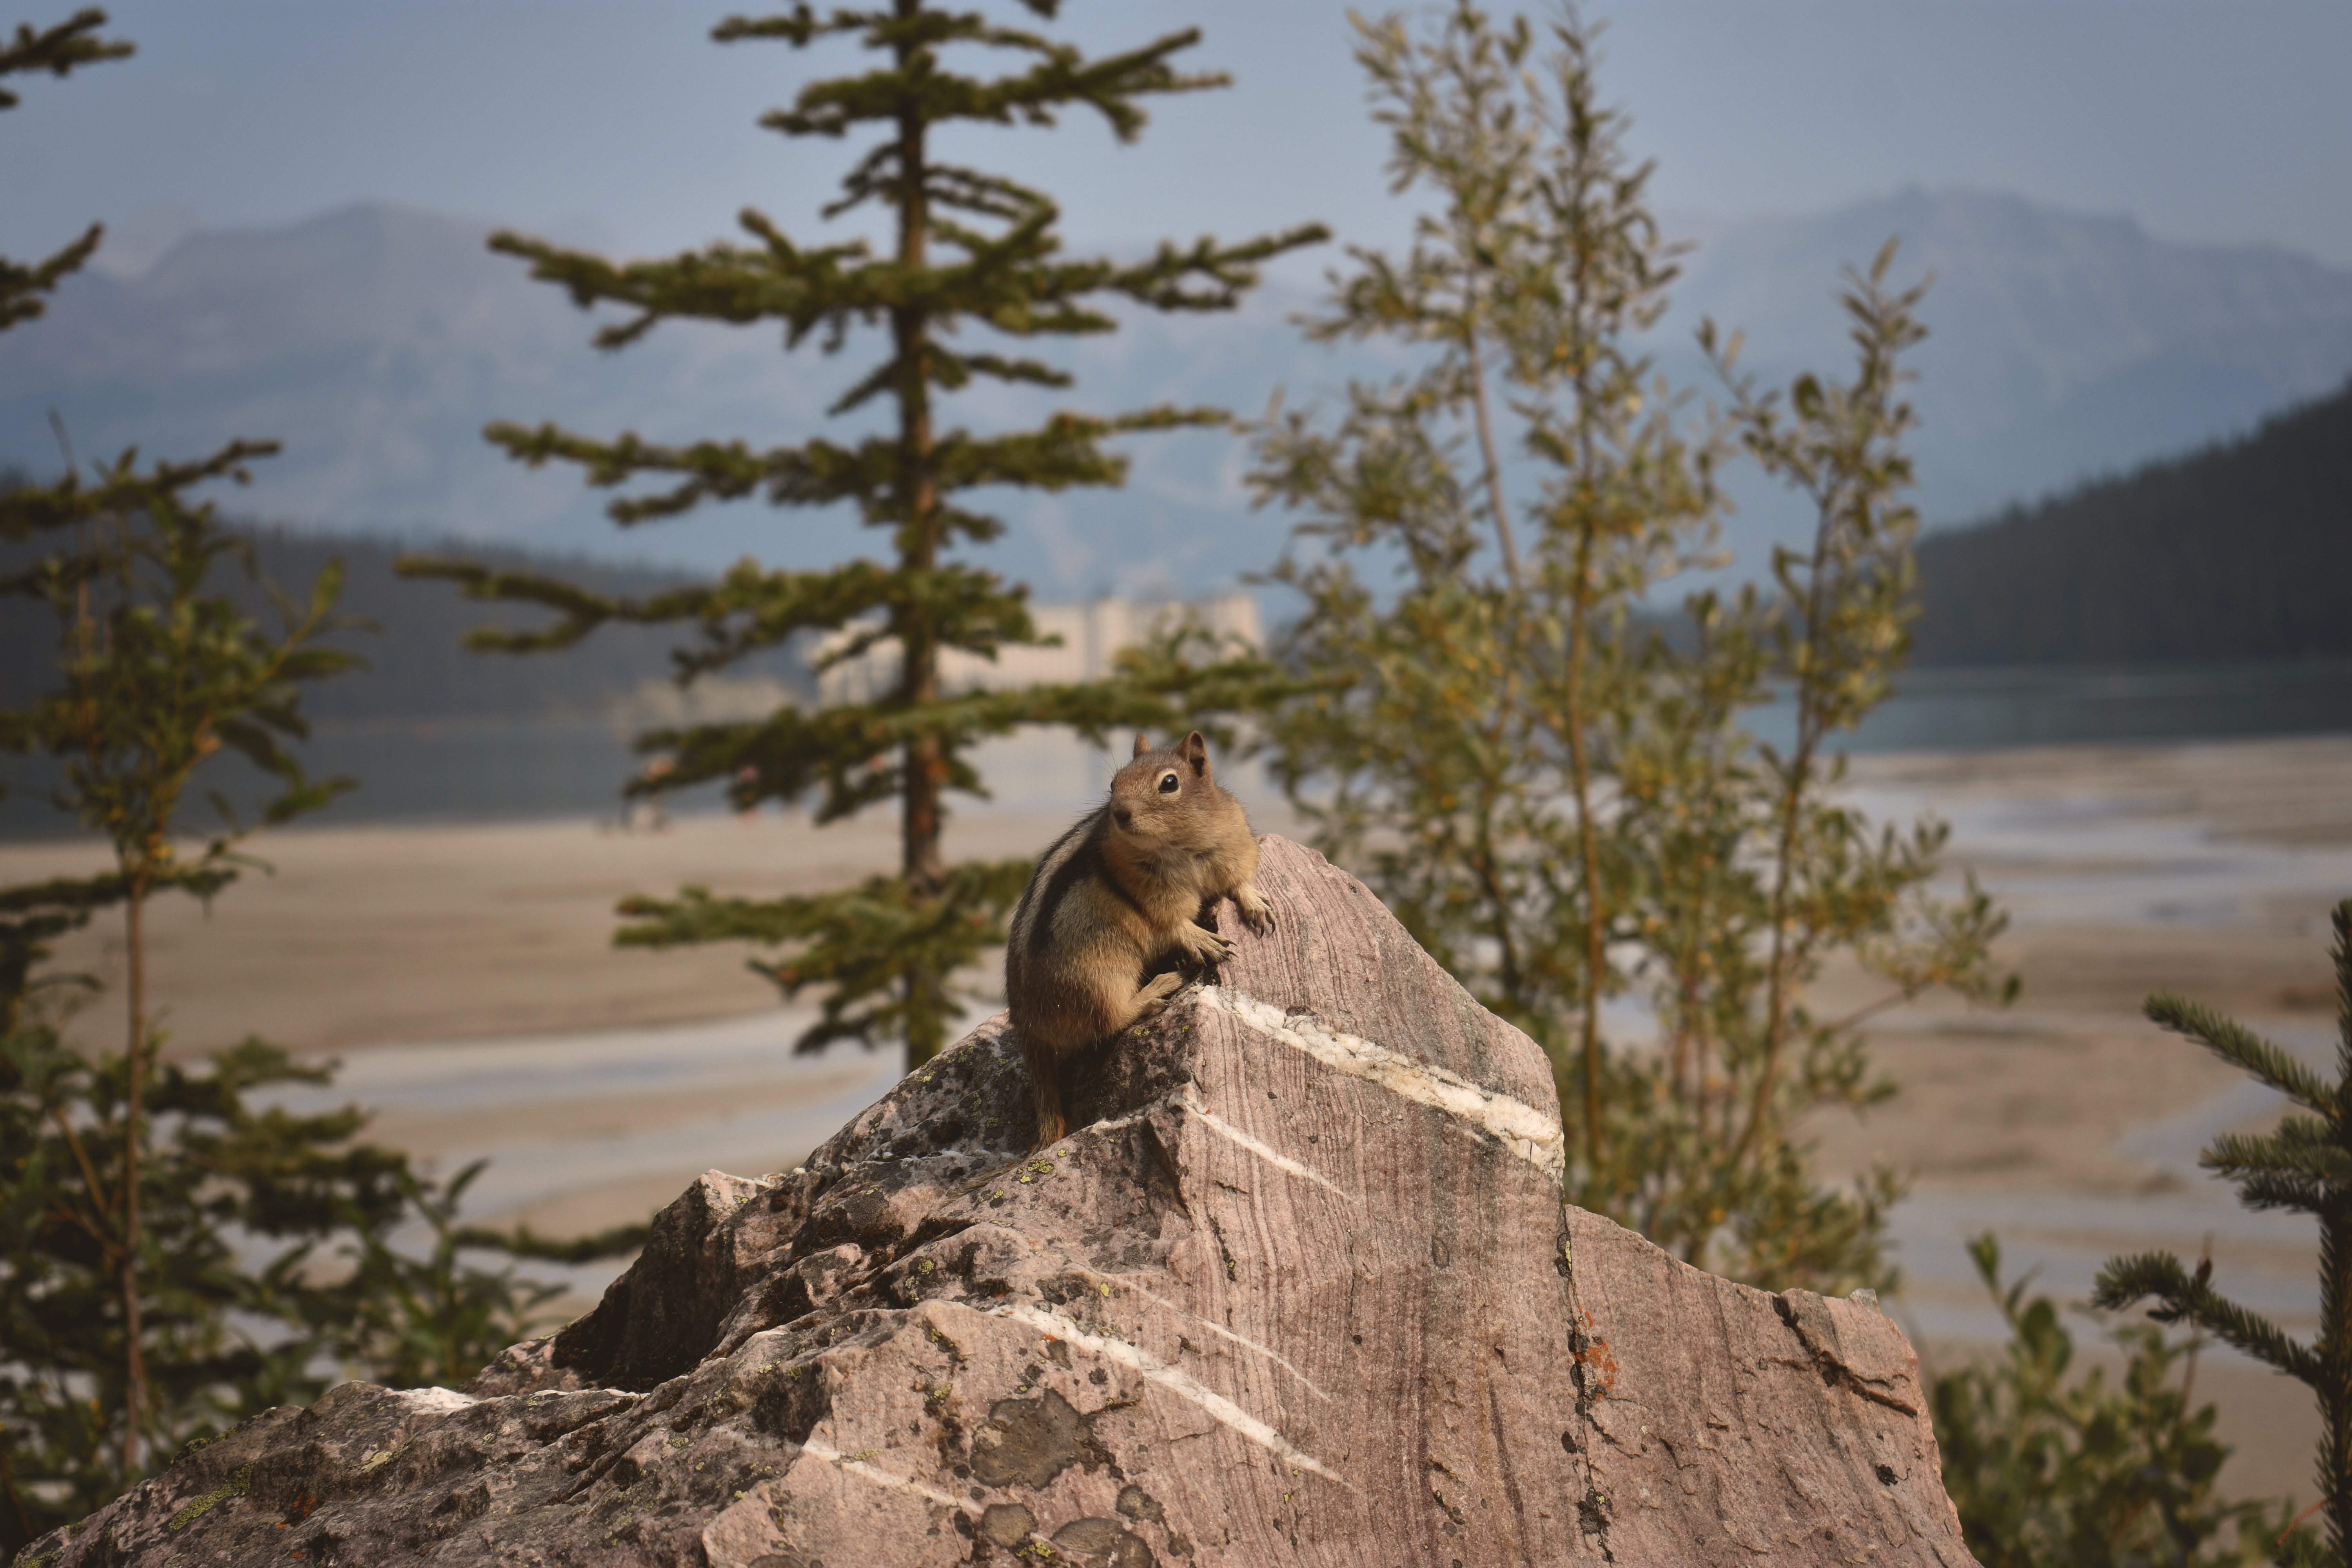 low-angle of squirrel on rock